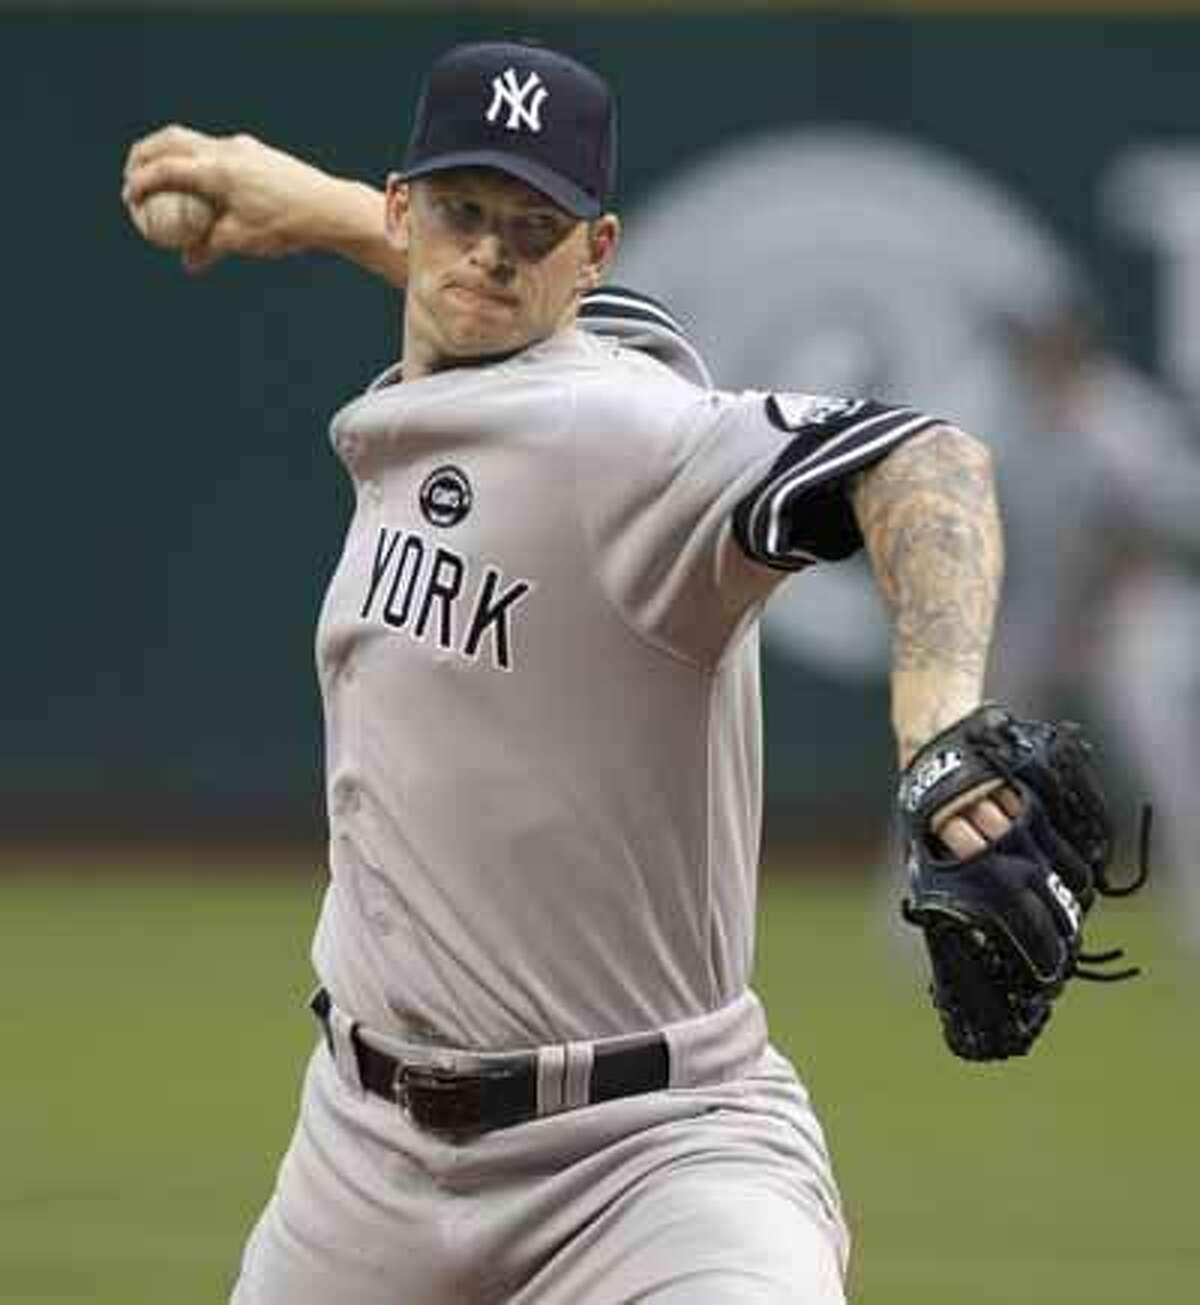 New York Yankees starting pitcher A.J. Burnett throws against the Cleveland Indians in the first inning of a baseball game in Cleveland on Wednesday. (AP)